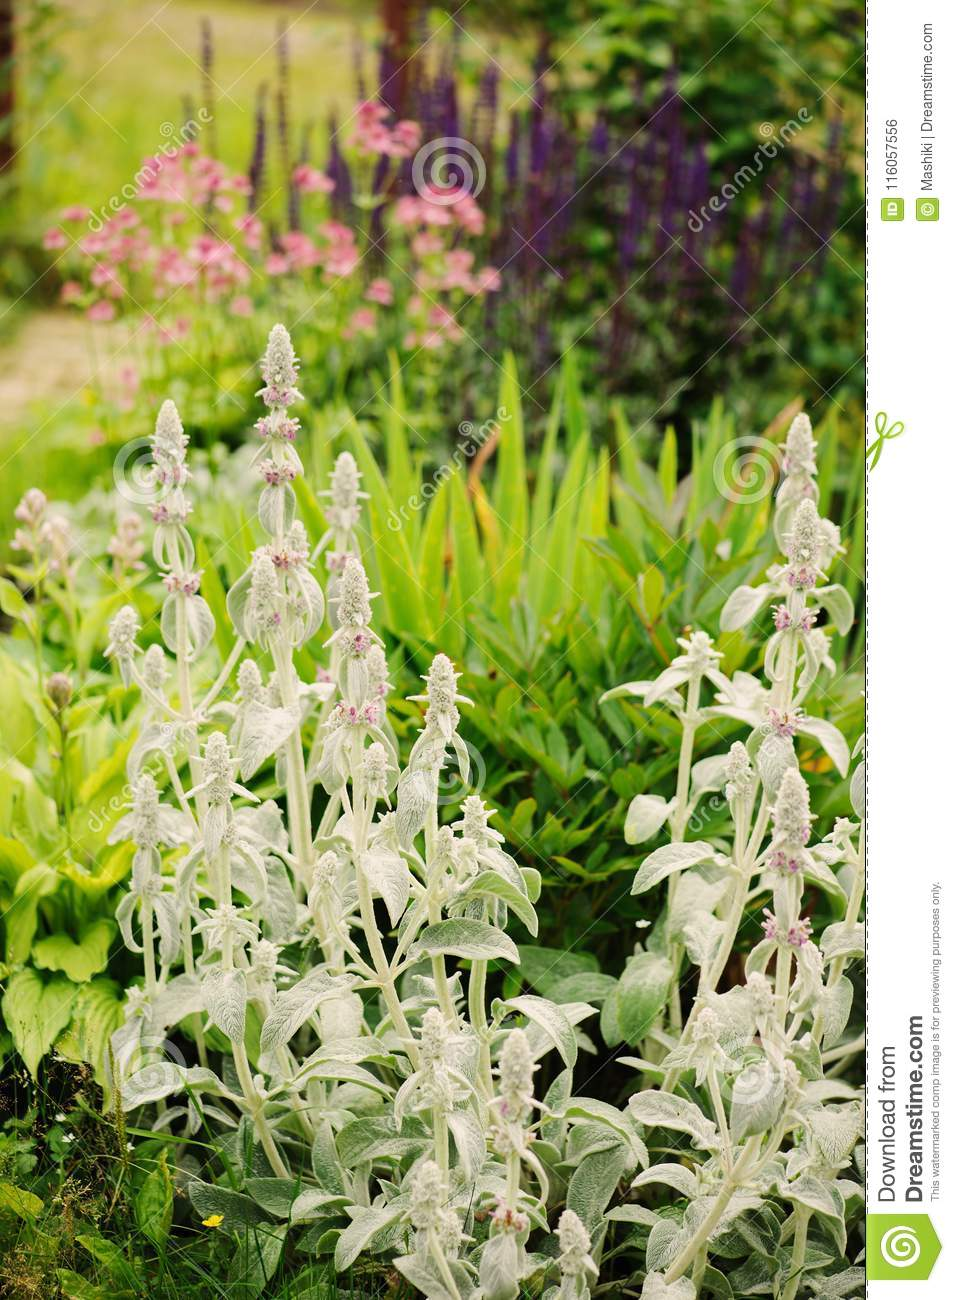 Stachys lamb ears planted in flowerbed with other blooming download stachys lamb ears planted in flowerbed with other blooming perennials stock photo image of mightylinksfo